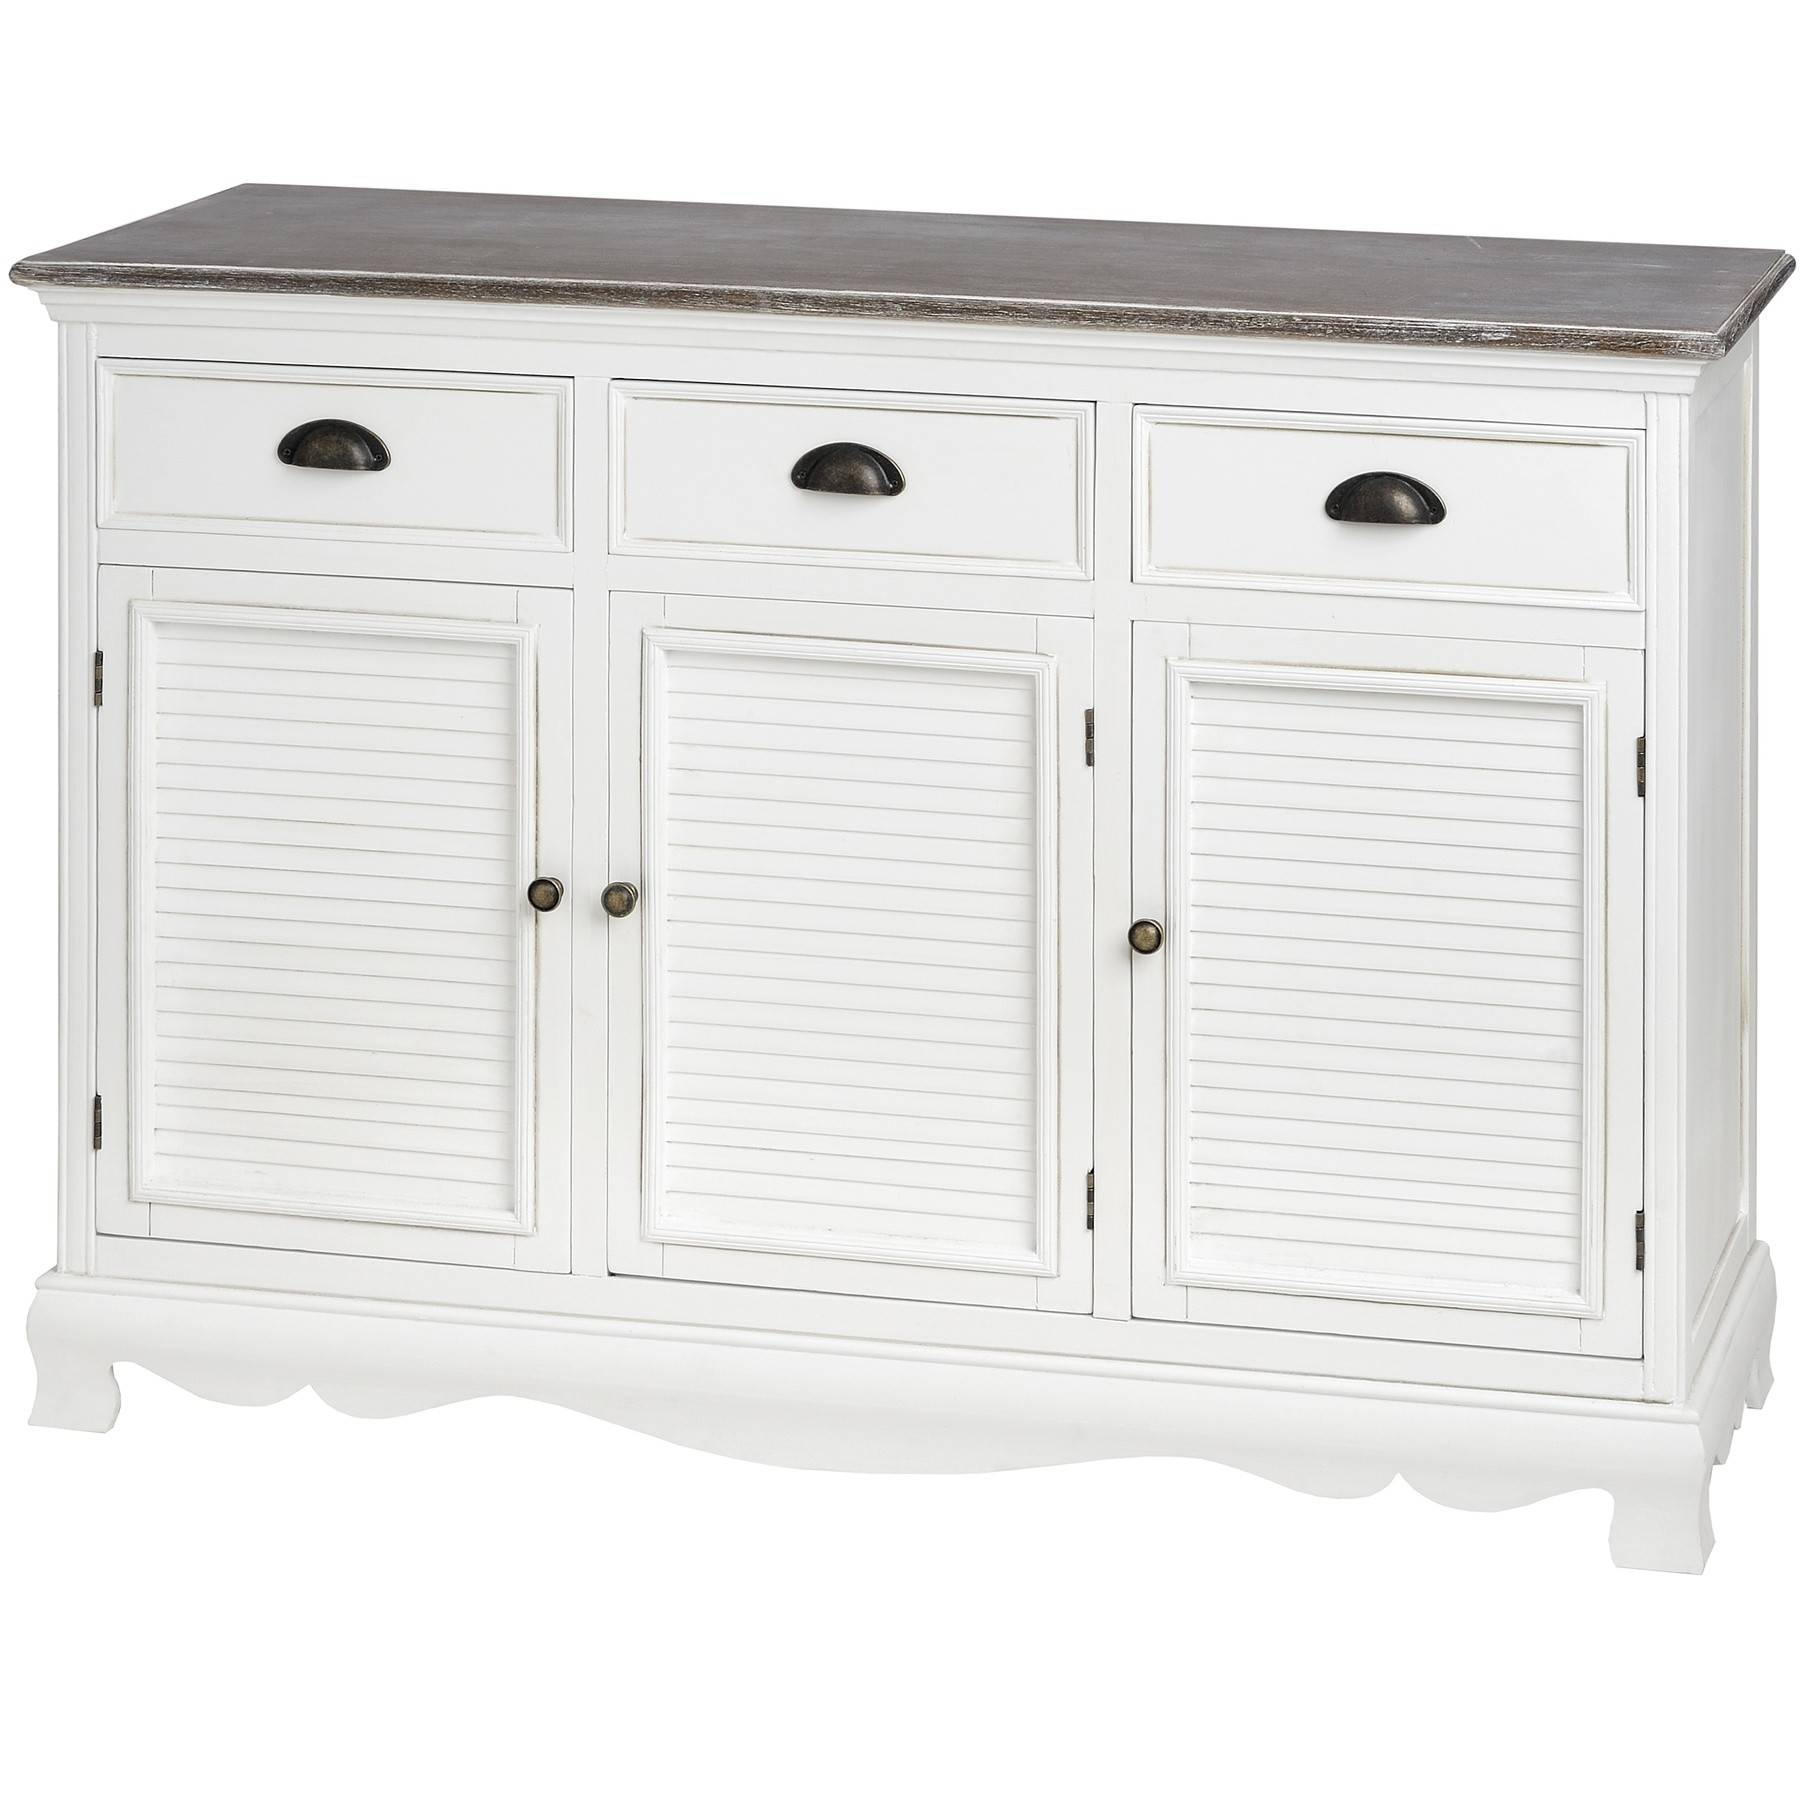 Louisiana Large White Sideboard With 3 Doors| Bedroom Furniture Direct throughout White Sideboard Cabinets (Image 14 of 30)